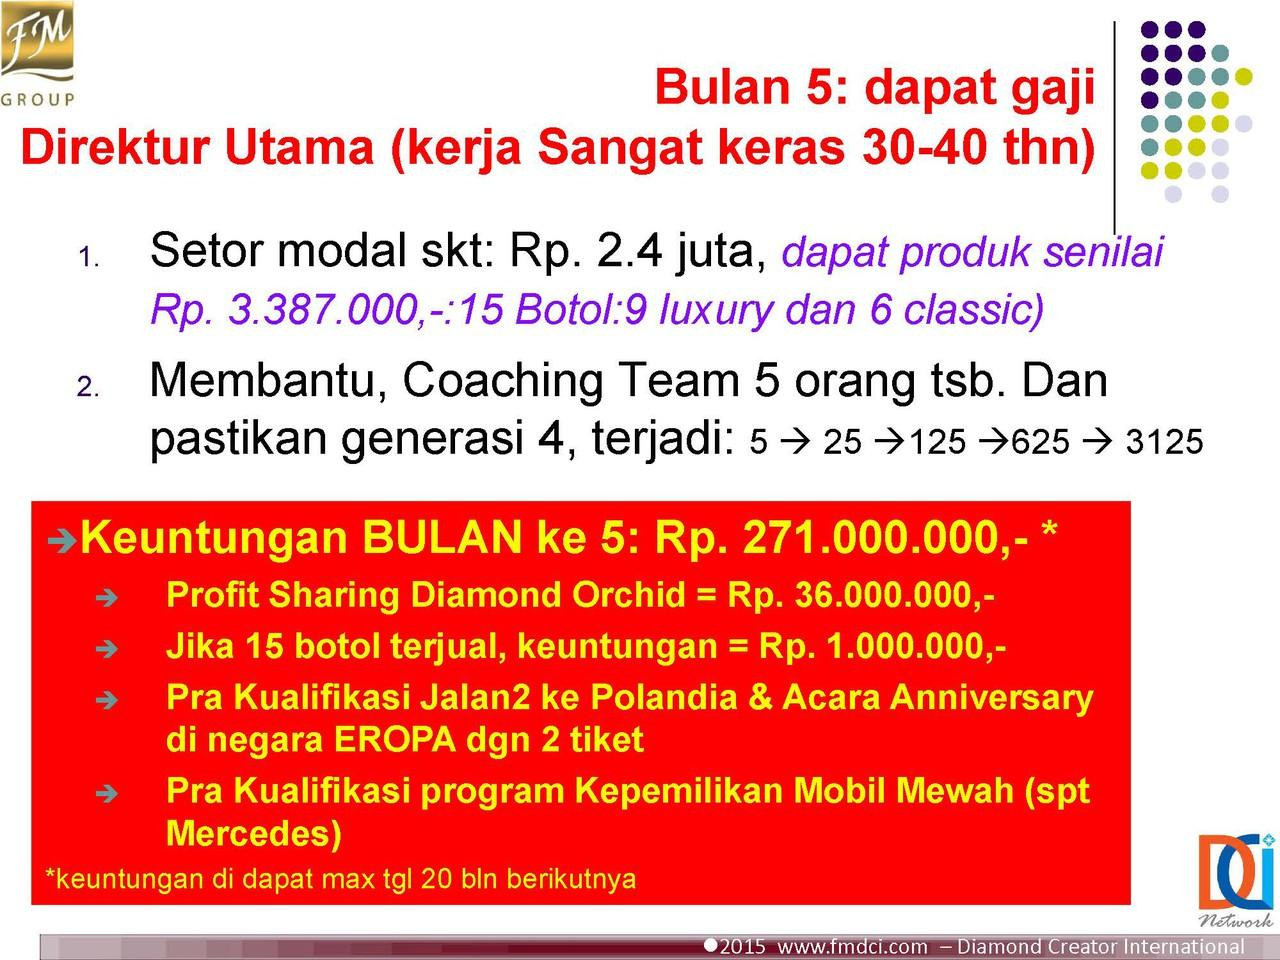 Program Diamond FM Group Indonesia Income Rp 270 Bulan